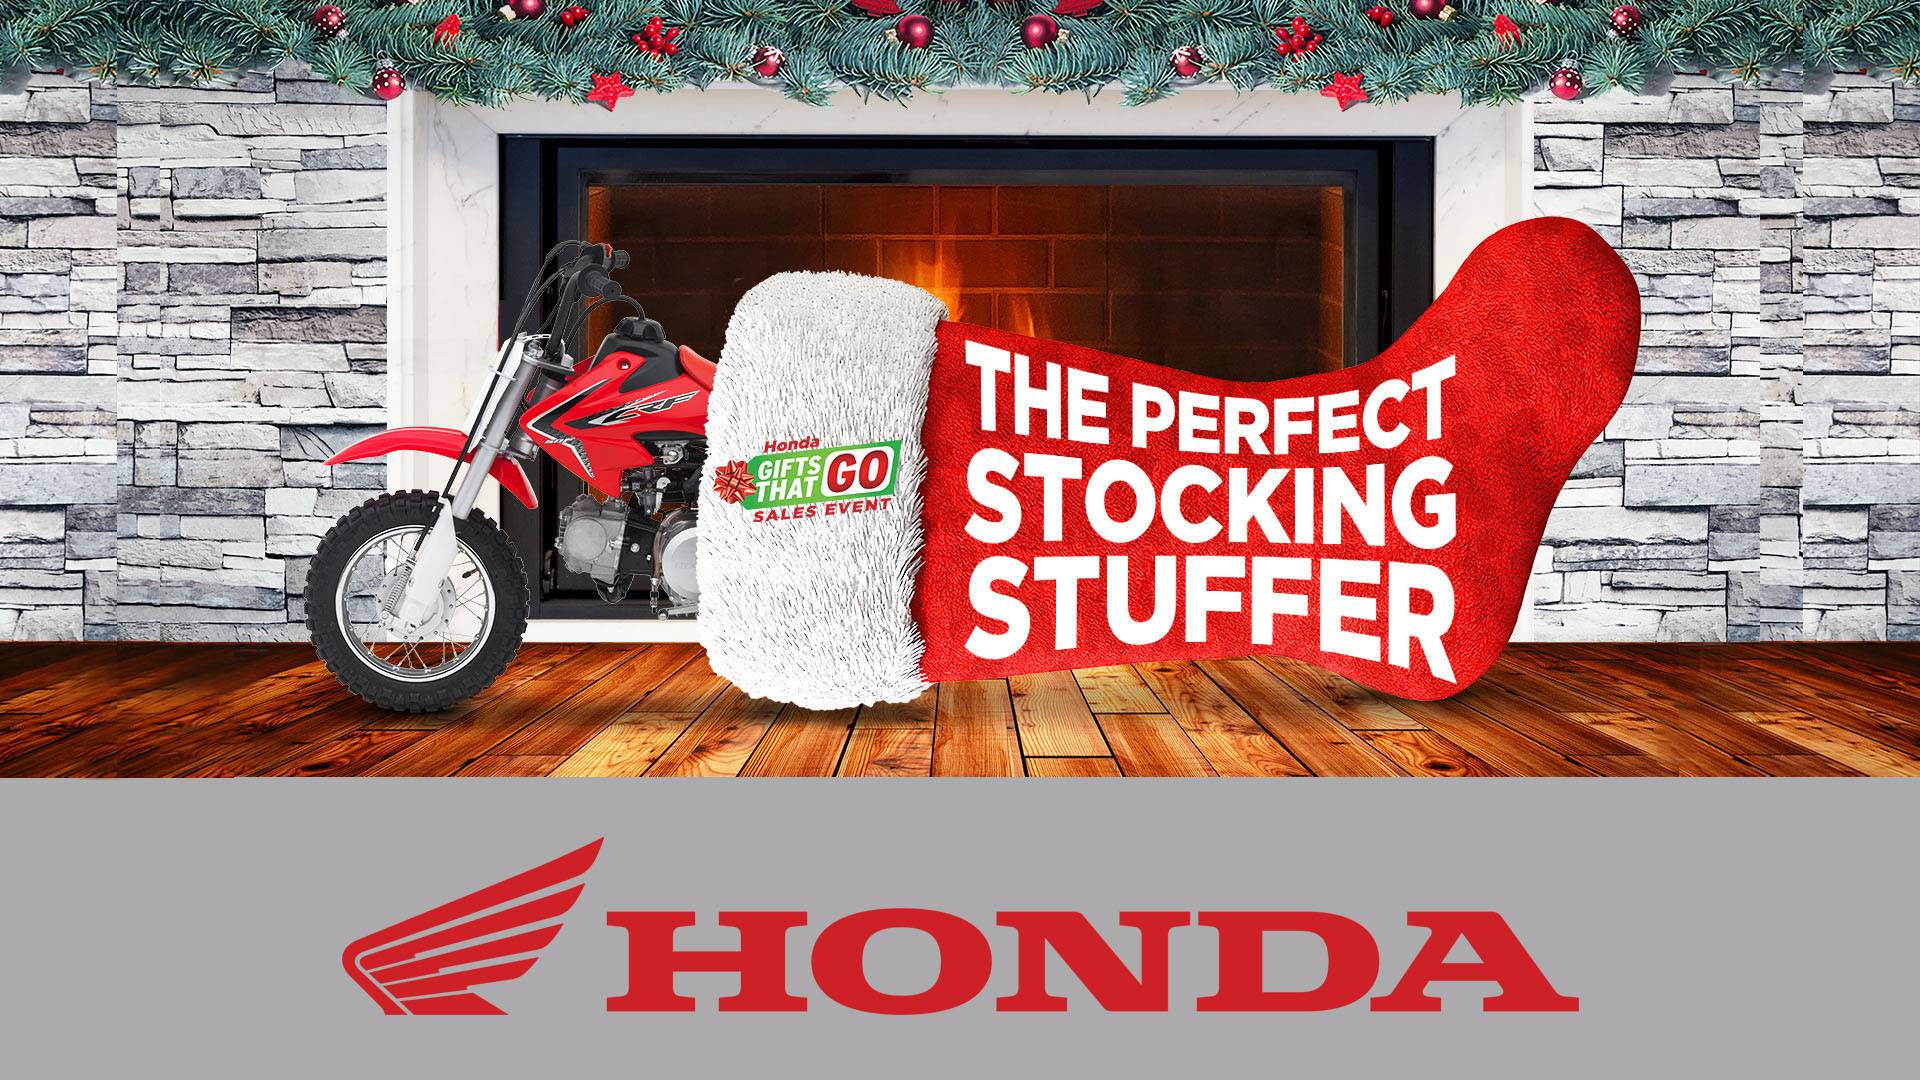 Honda - The Perfect Stocking Stuffer